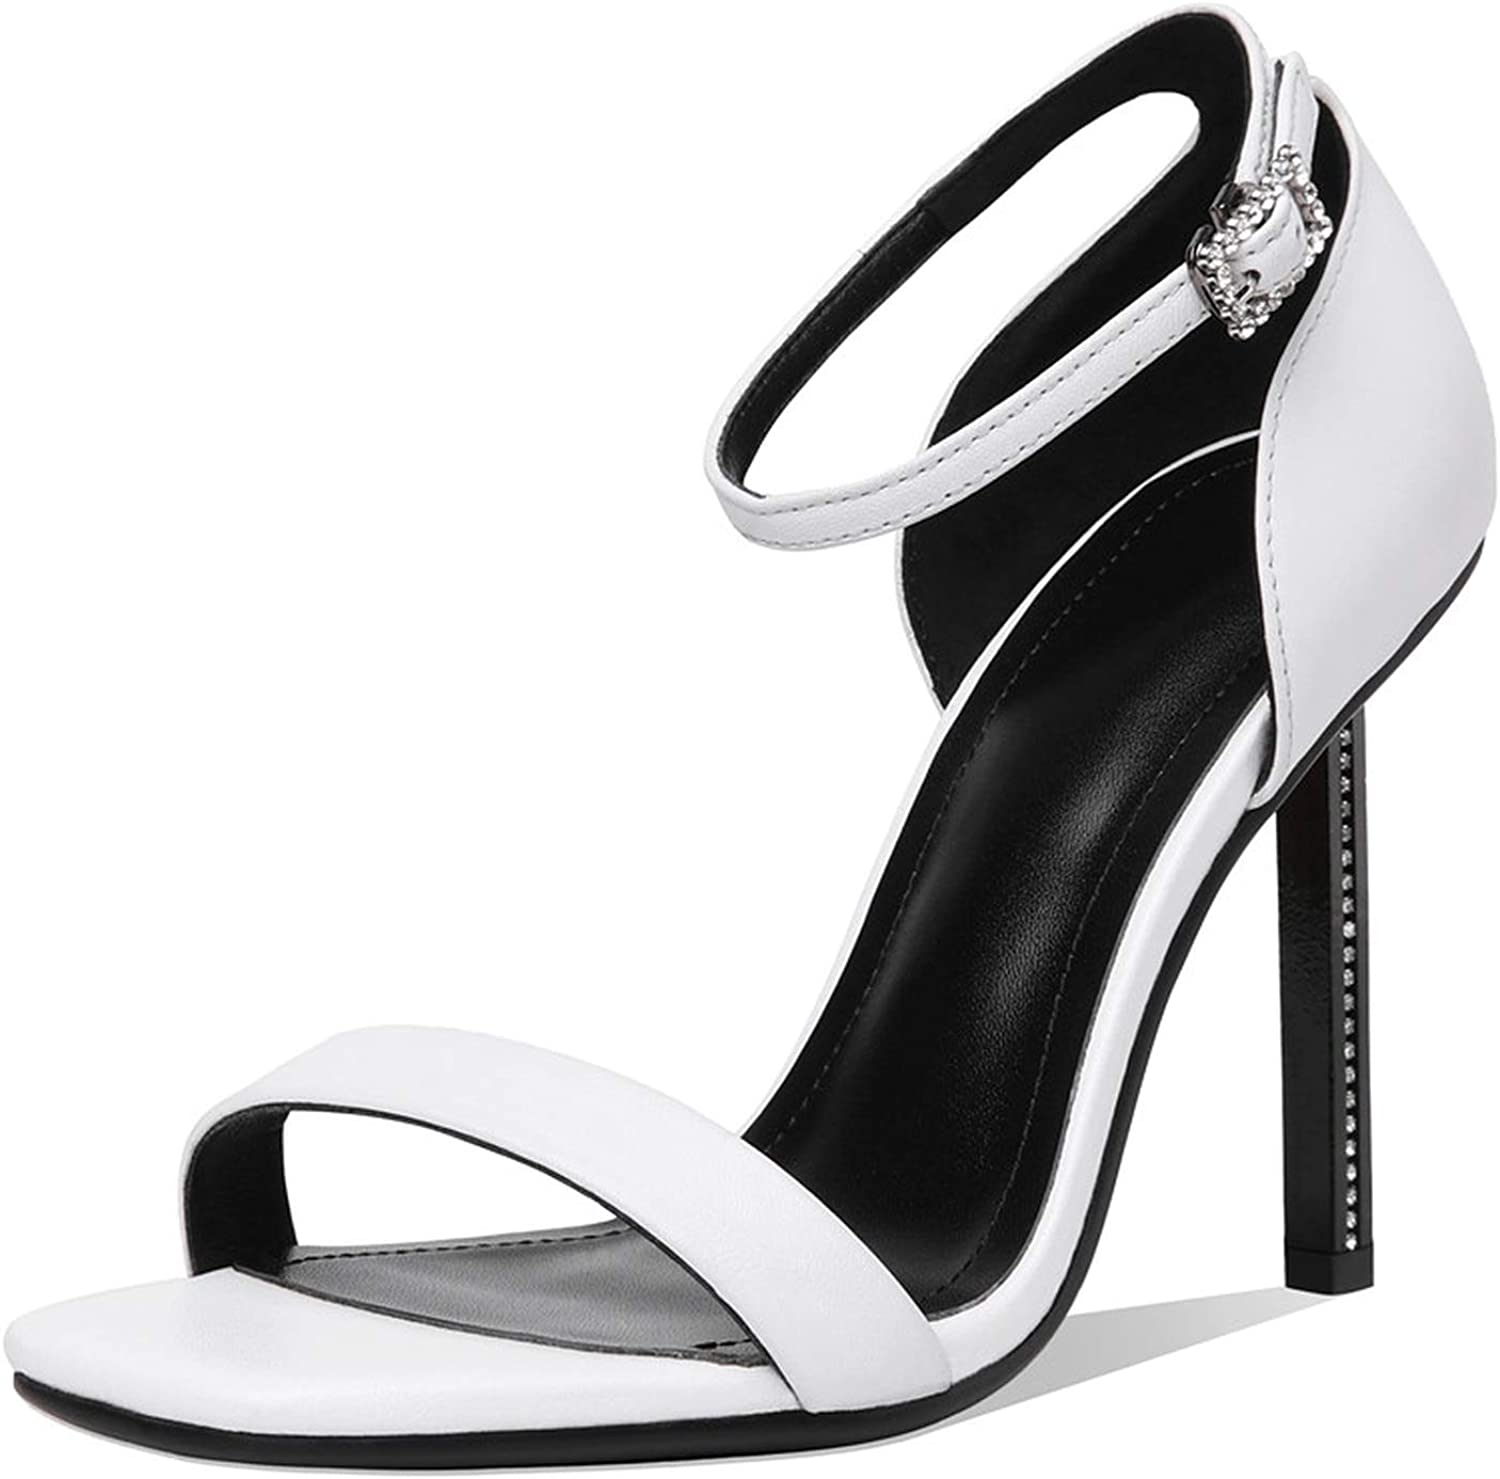 Genuine Leather shoes Women Sandals 9.5cm Stiletto high Heels Summer Sandals Sexy Solid color Dress Wedding shoes